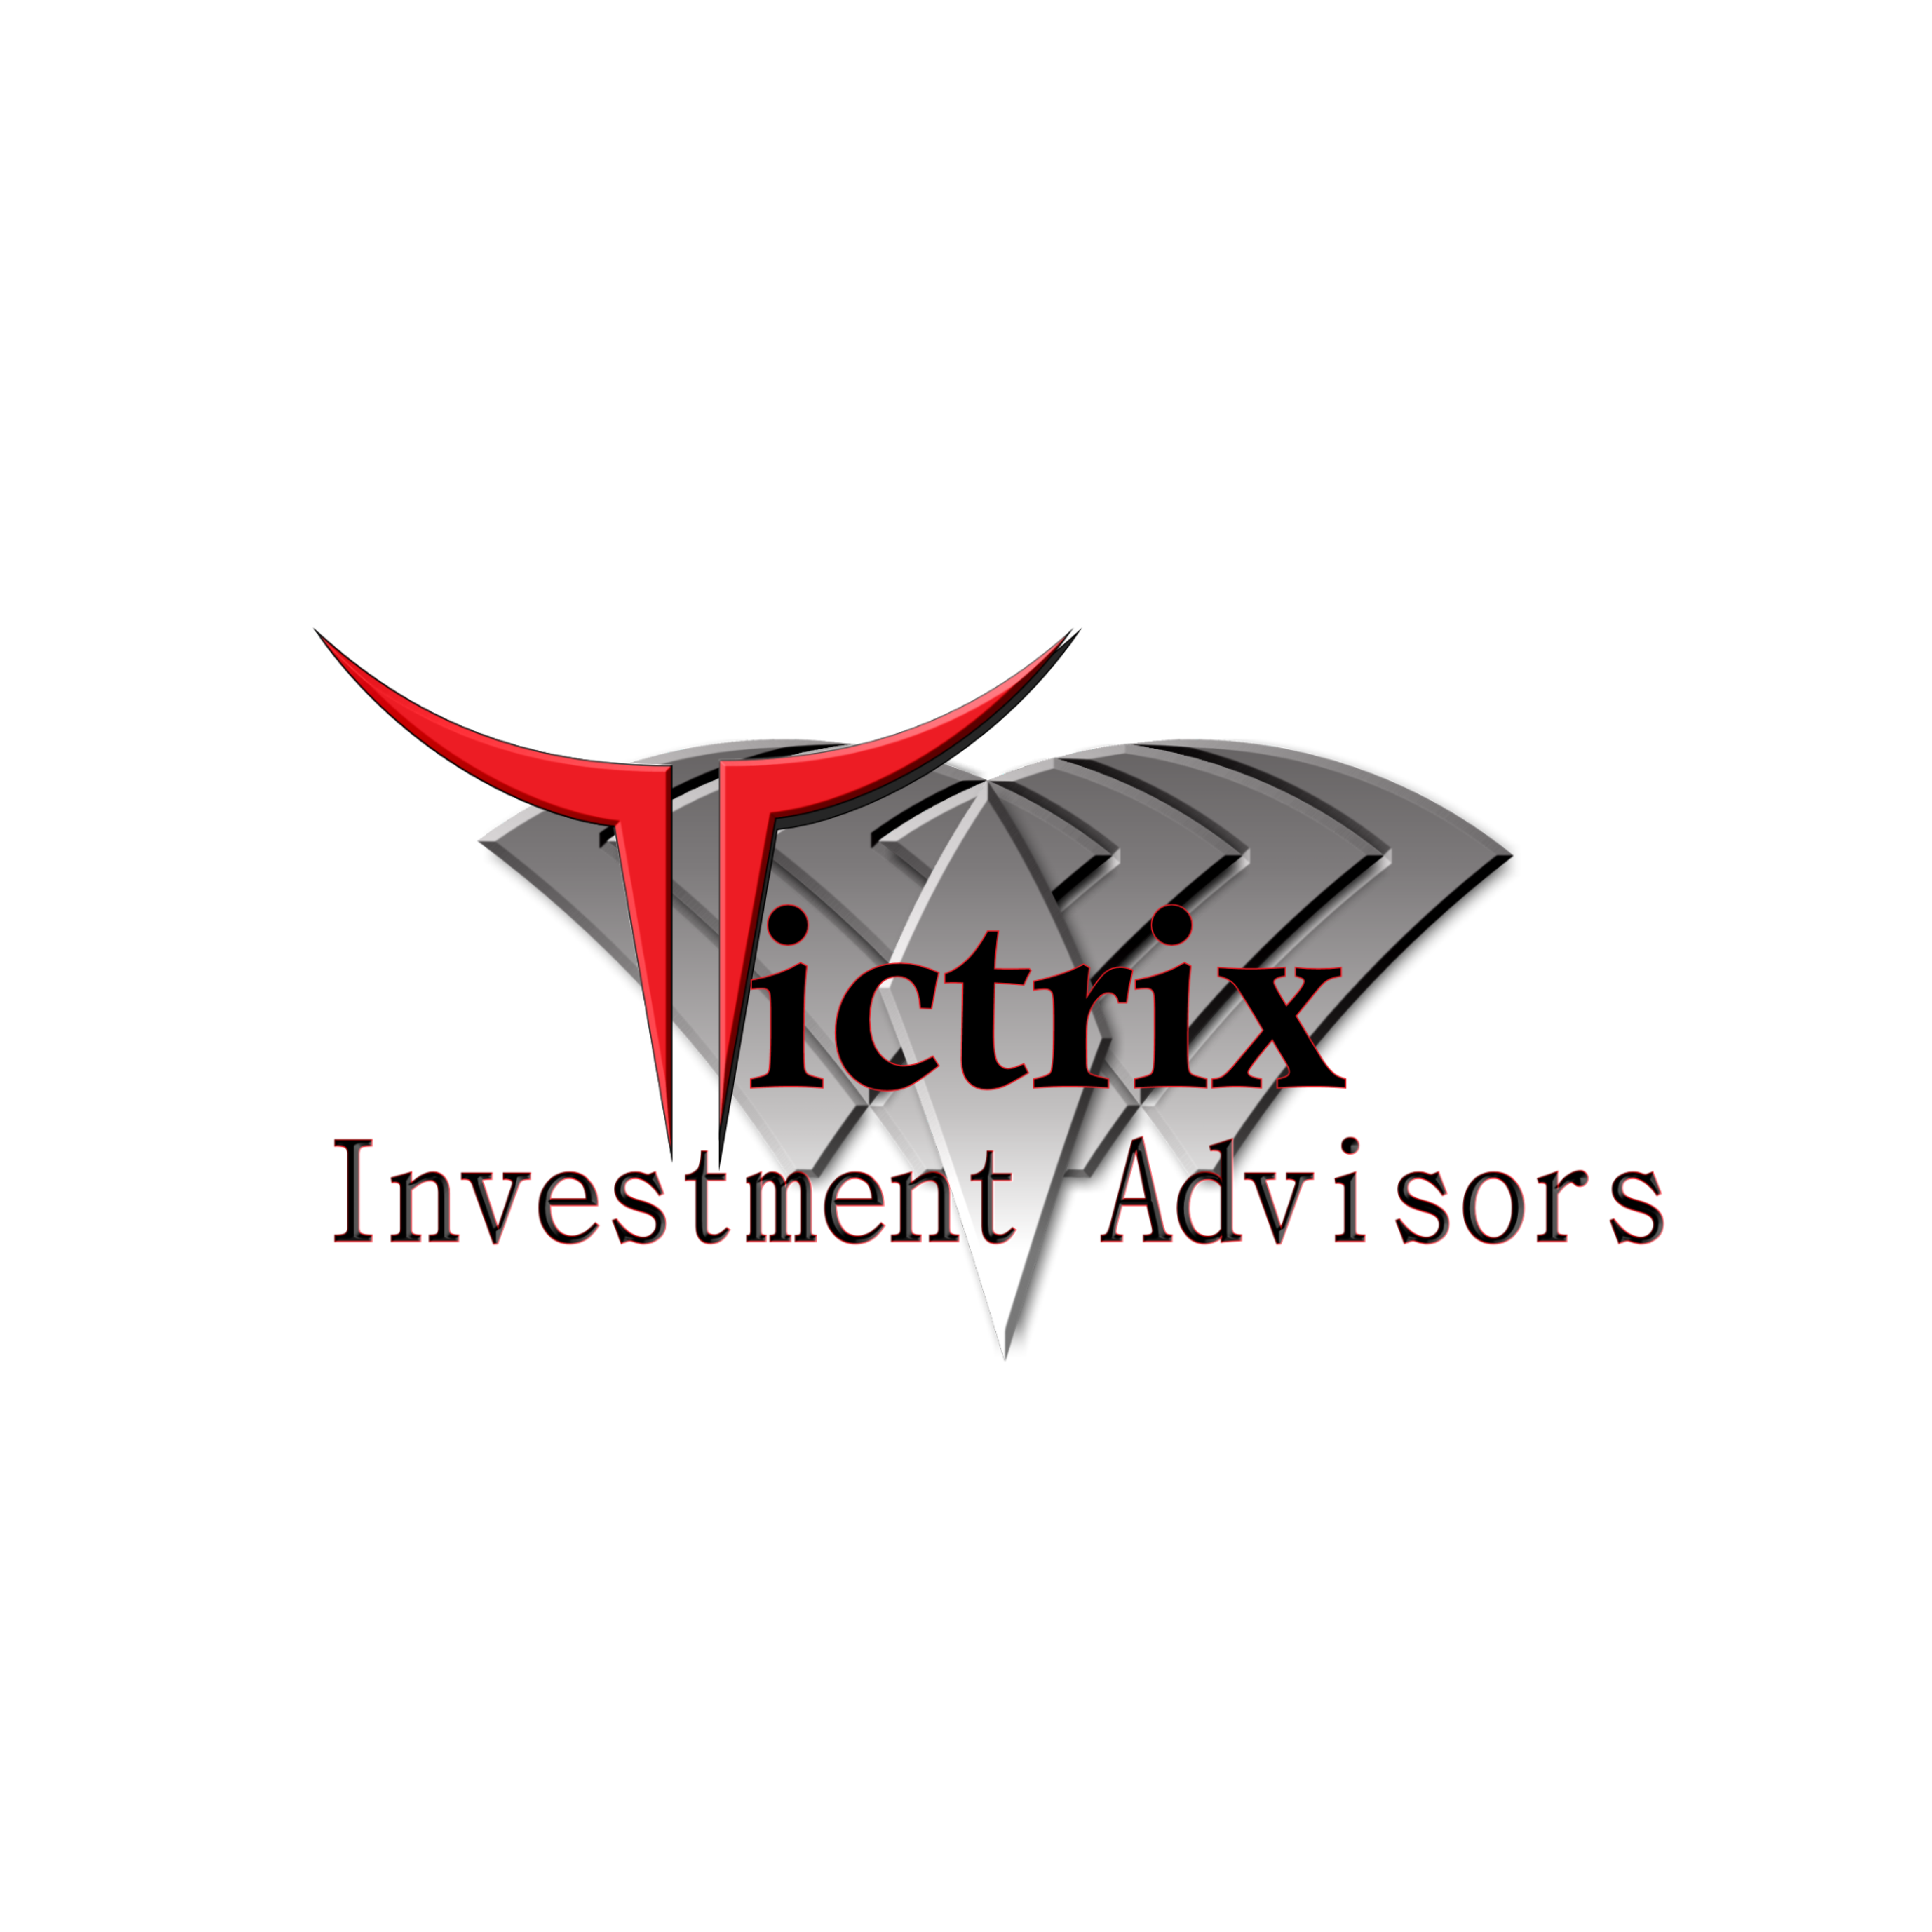 Logo Design by Steven Fitzpatrick - Entry No. 30 in the Logo Design Contest Inspiring Logo Design for Victrix Investment Advisors.